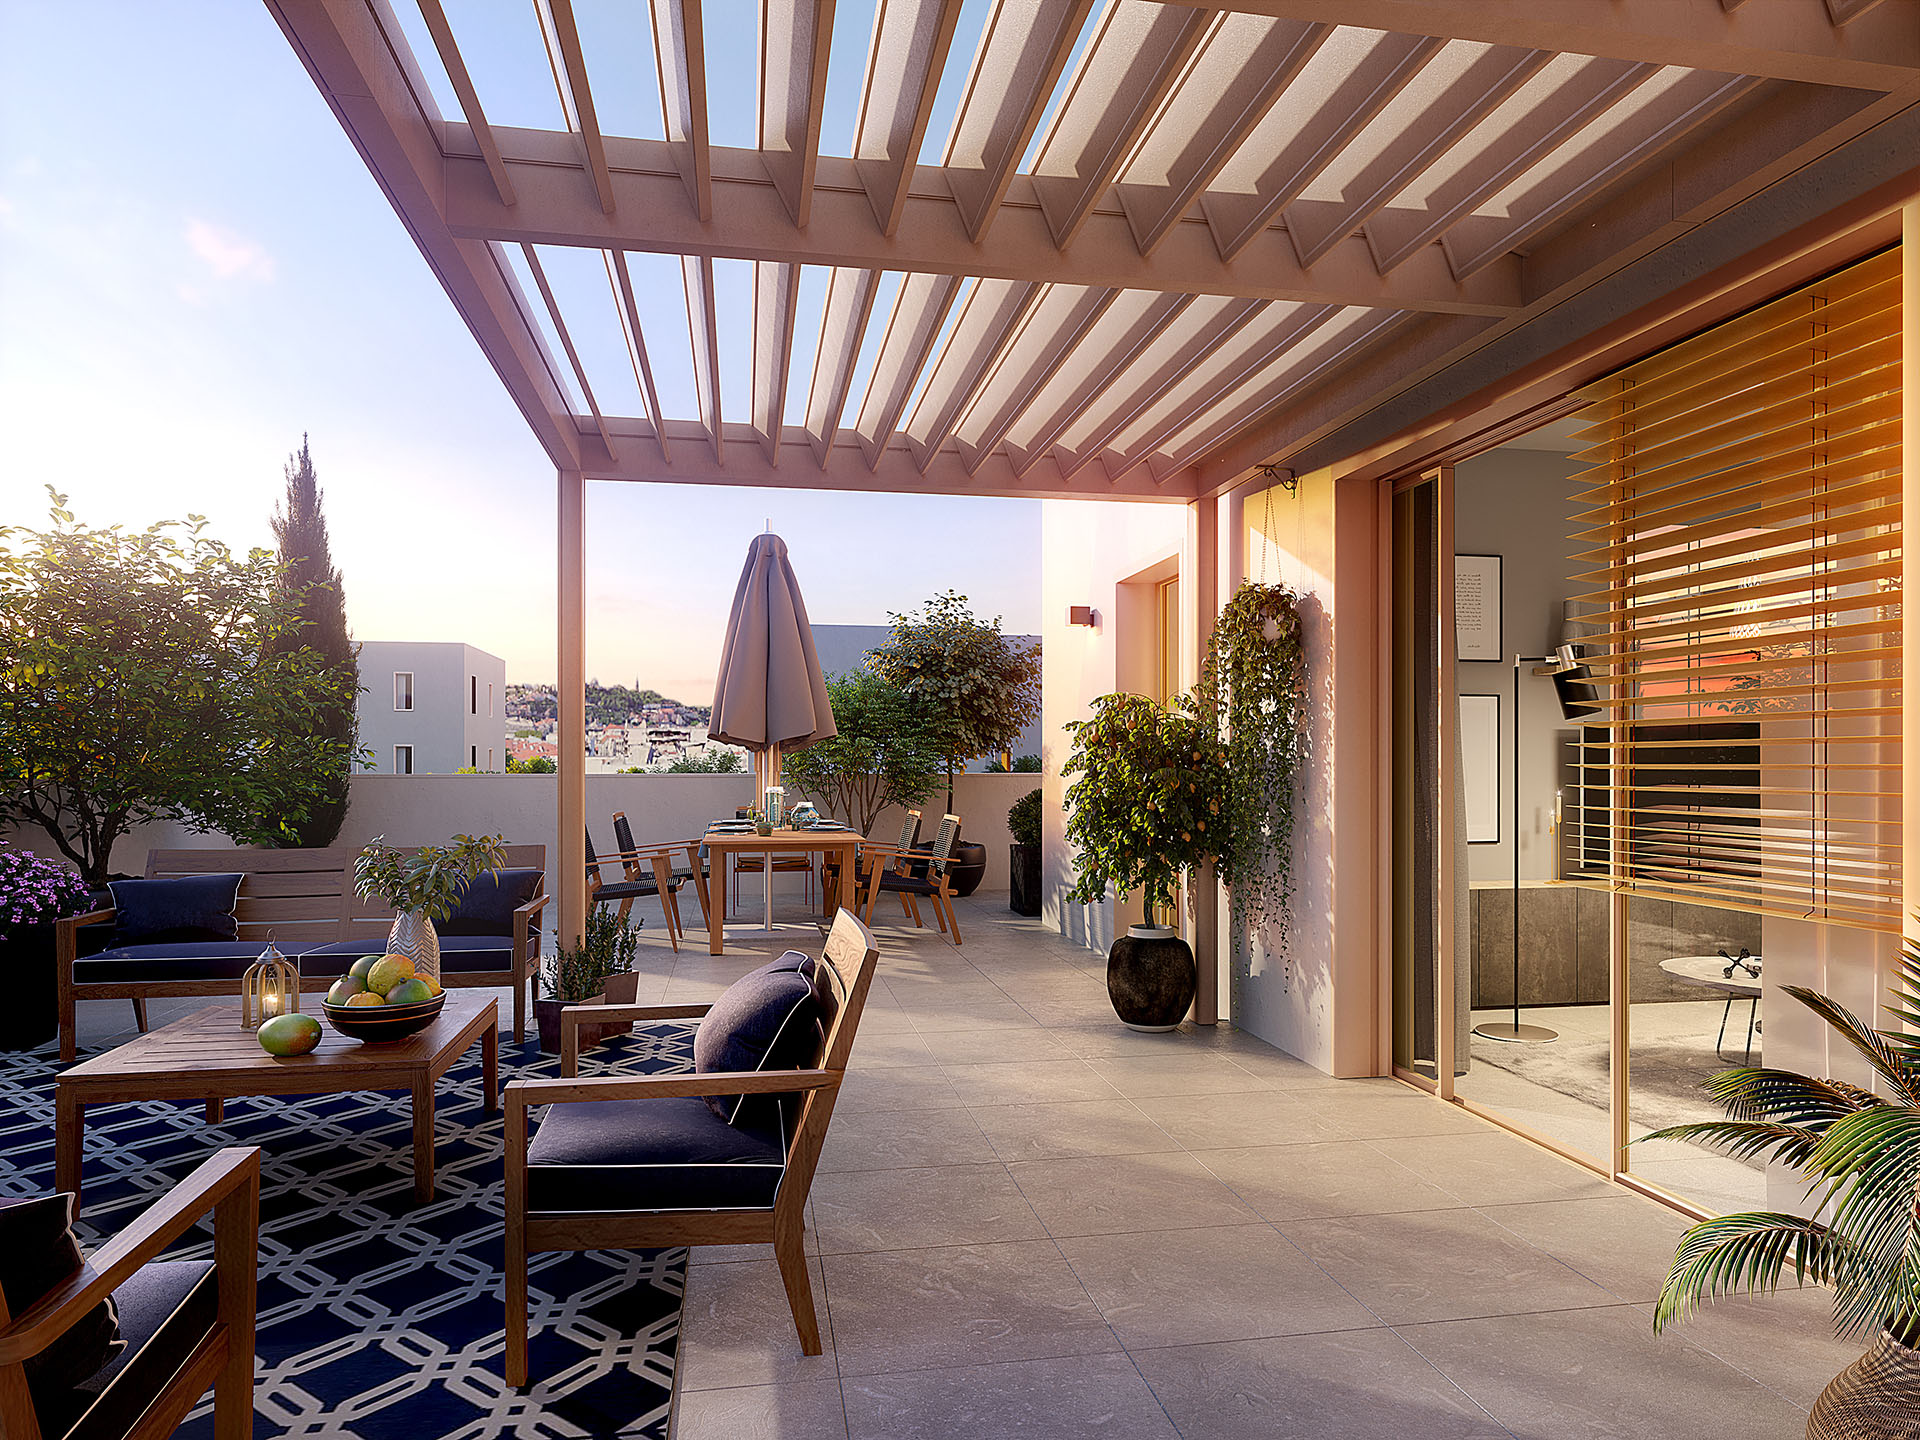 3D synthesis image of the terrace of an apartment